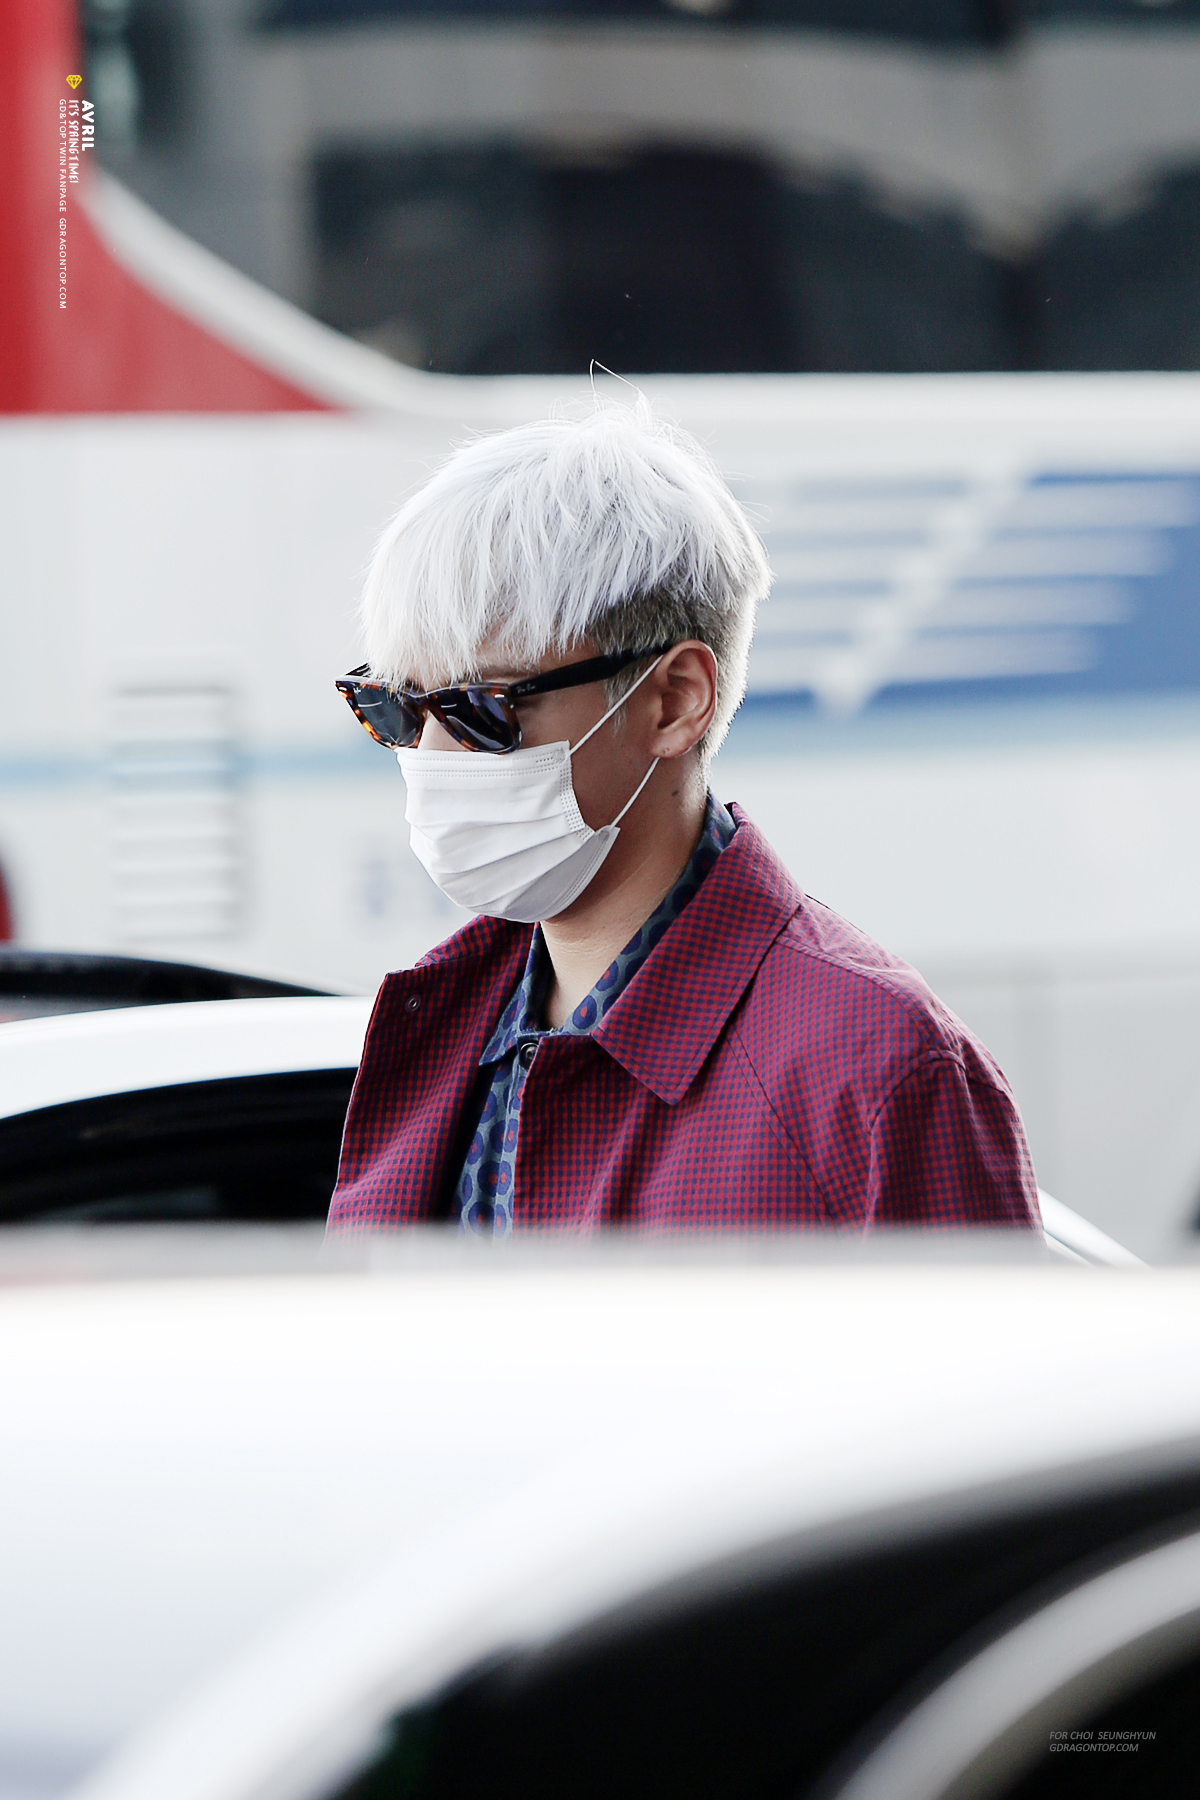 TOP departure Seoul to Osaka by avril_gdtop 2015-08-21 (1).jpg